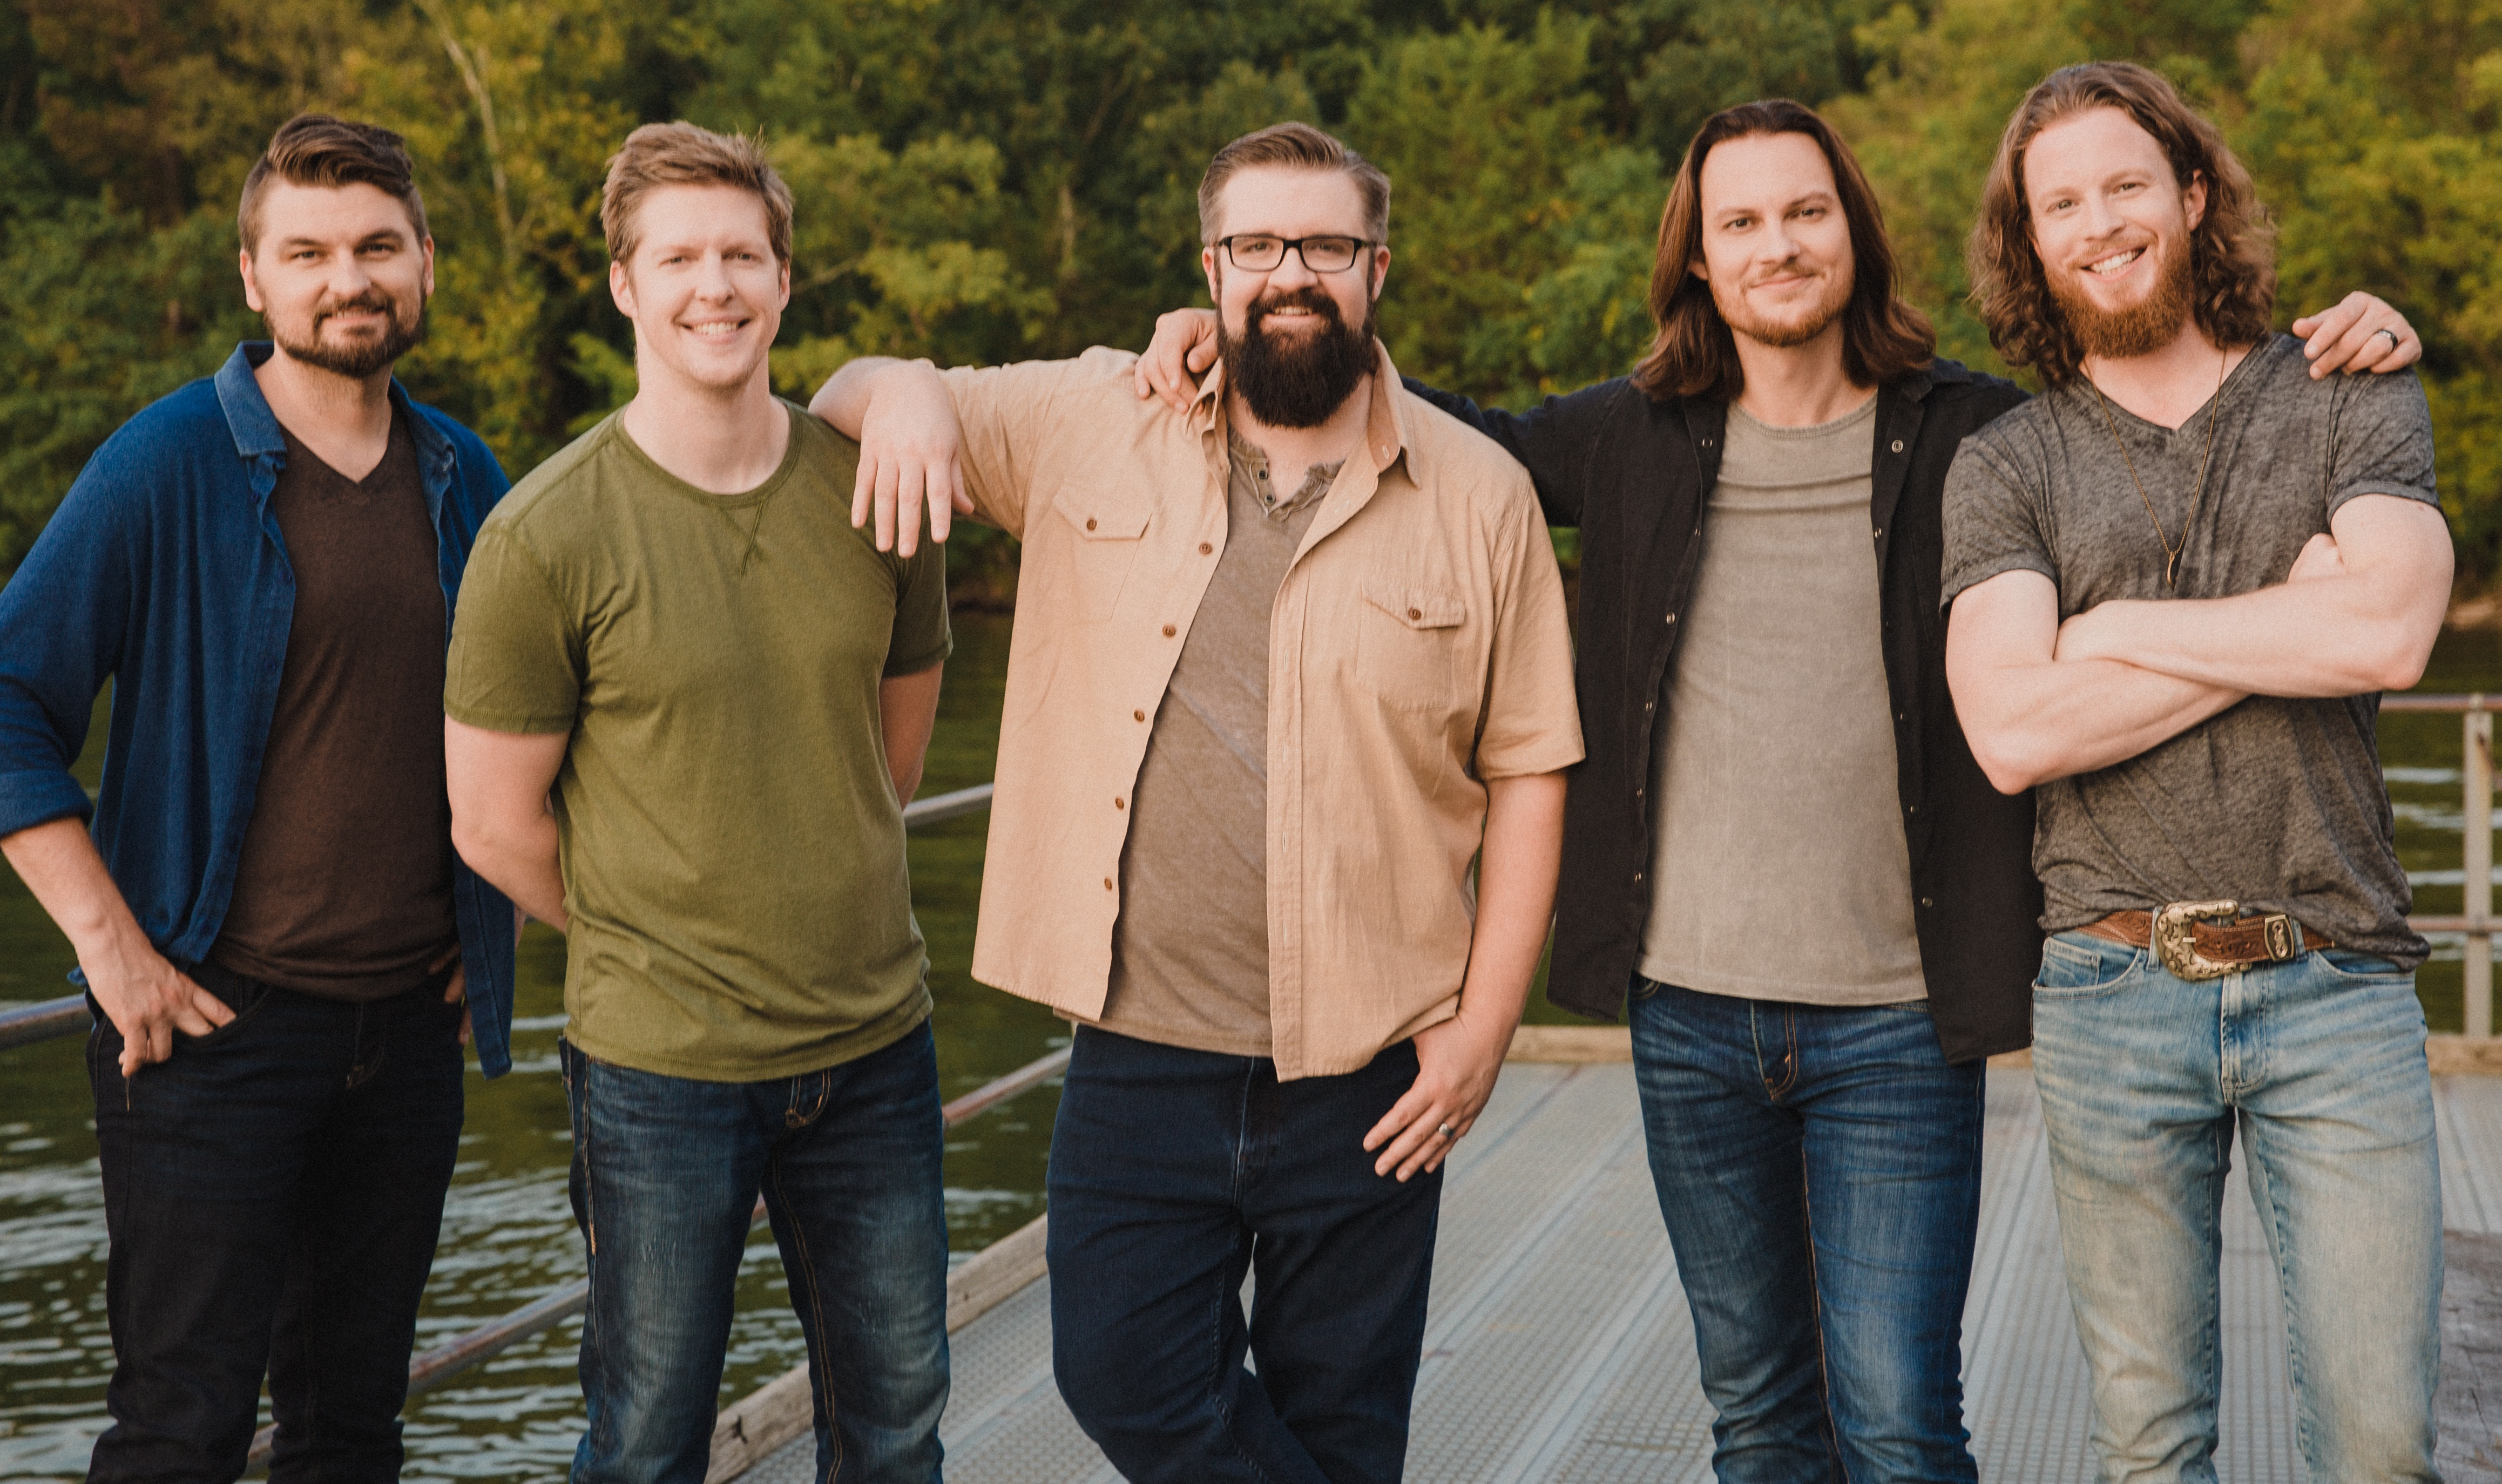 Home Free Christmas Tour 2020 Home Free Tackles Forbidden Love in New 'Cross That Bridge' Video